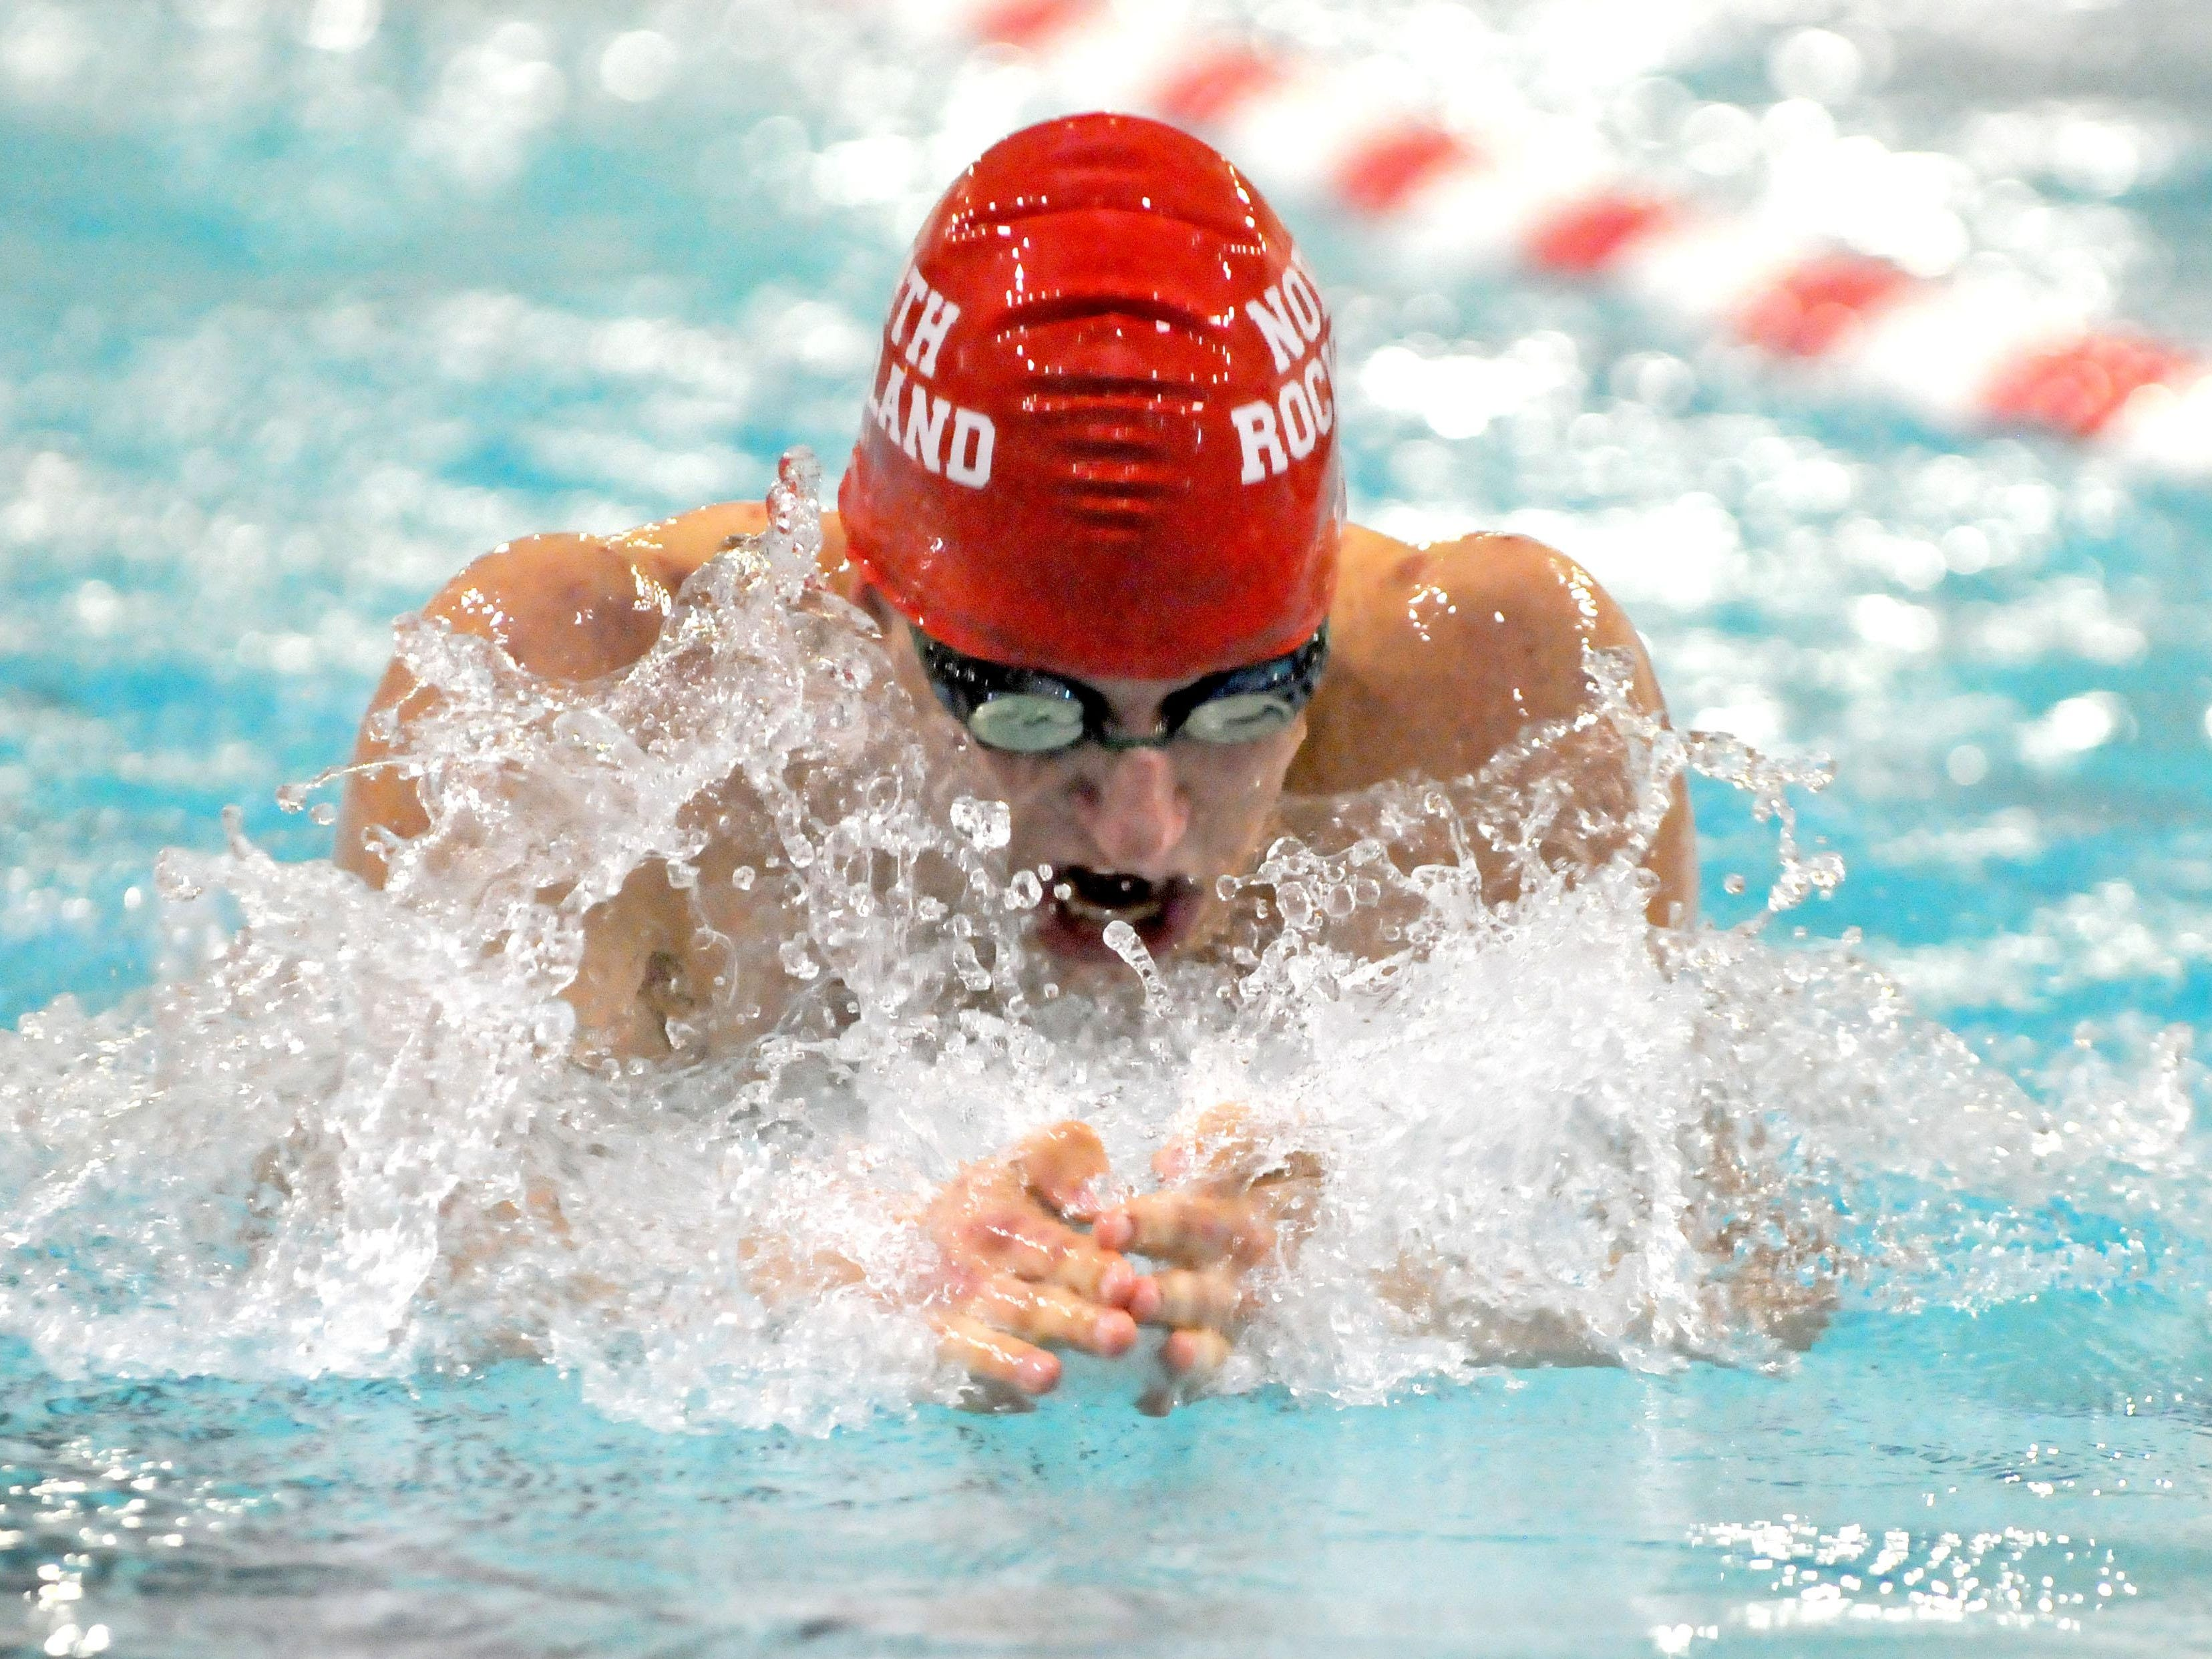 Matthew Zugibe, of North Rockland, swims the 100-yard breaststroke at the 2016 NYSPHSAA Swim Meet at Erie Community College's Flickinger Center in Buffalo on Friday.